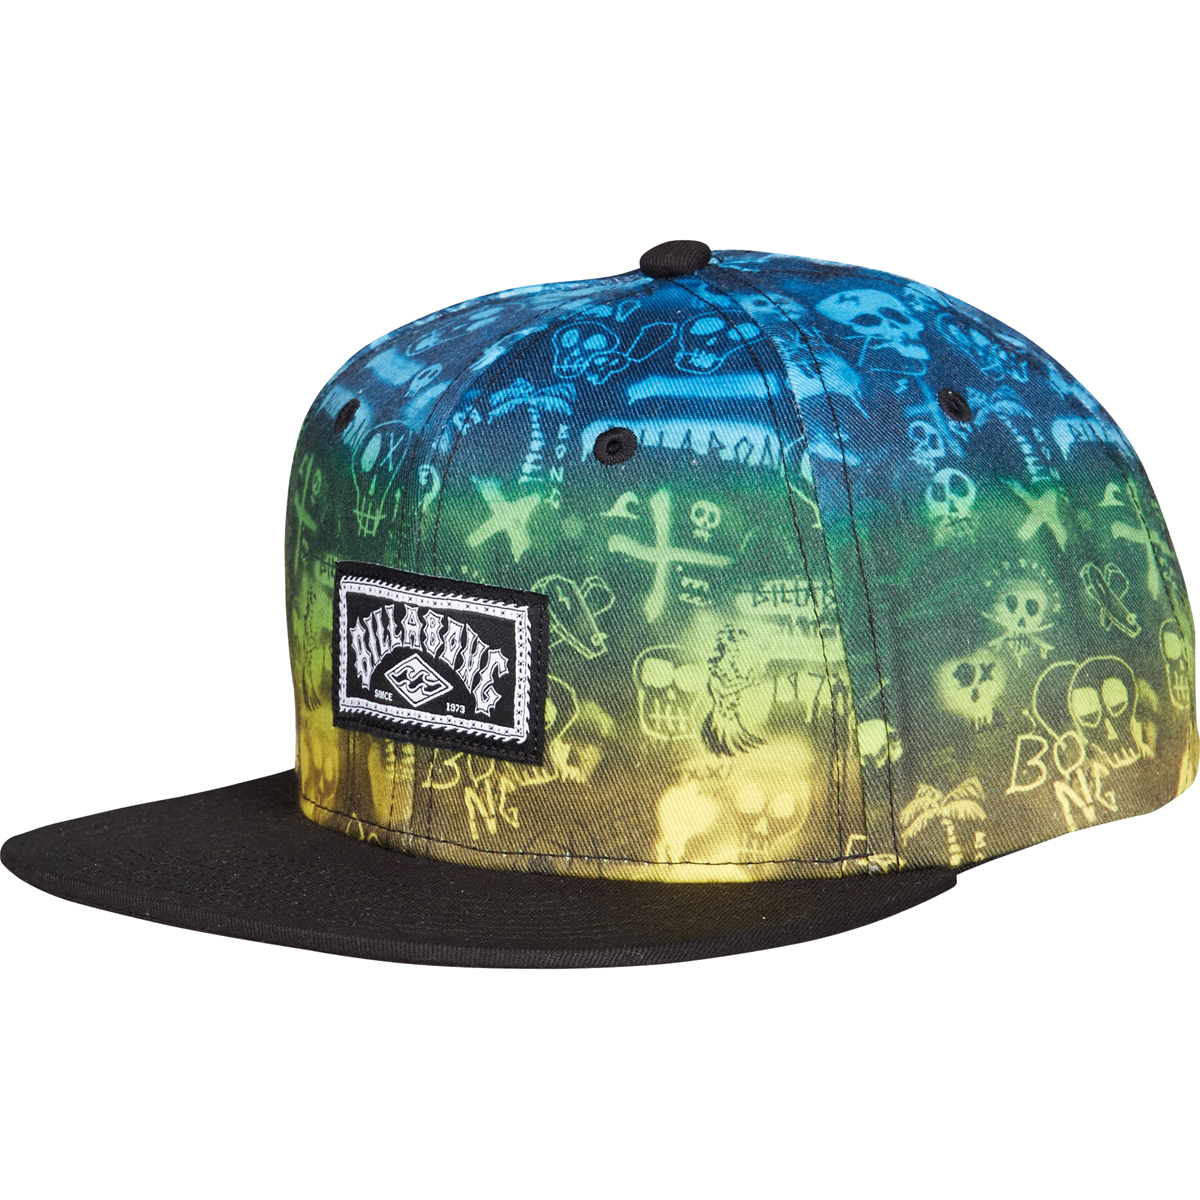 New BAD BILLY SNAPBACK